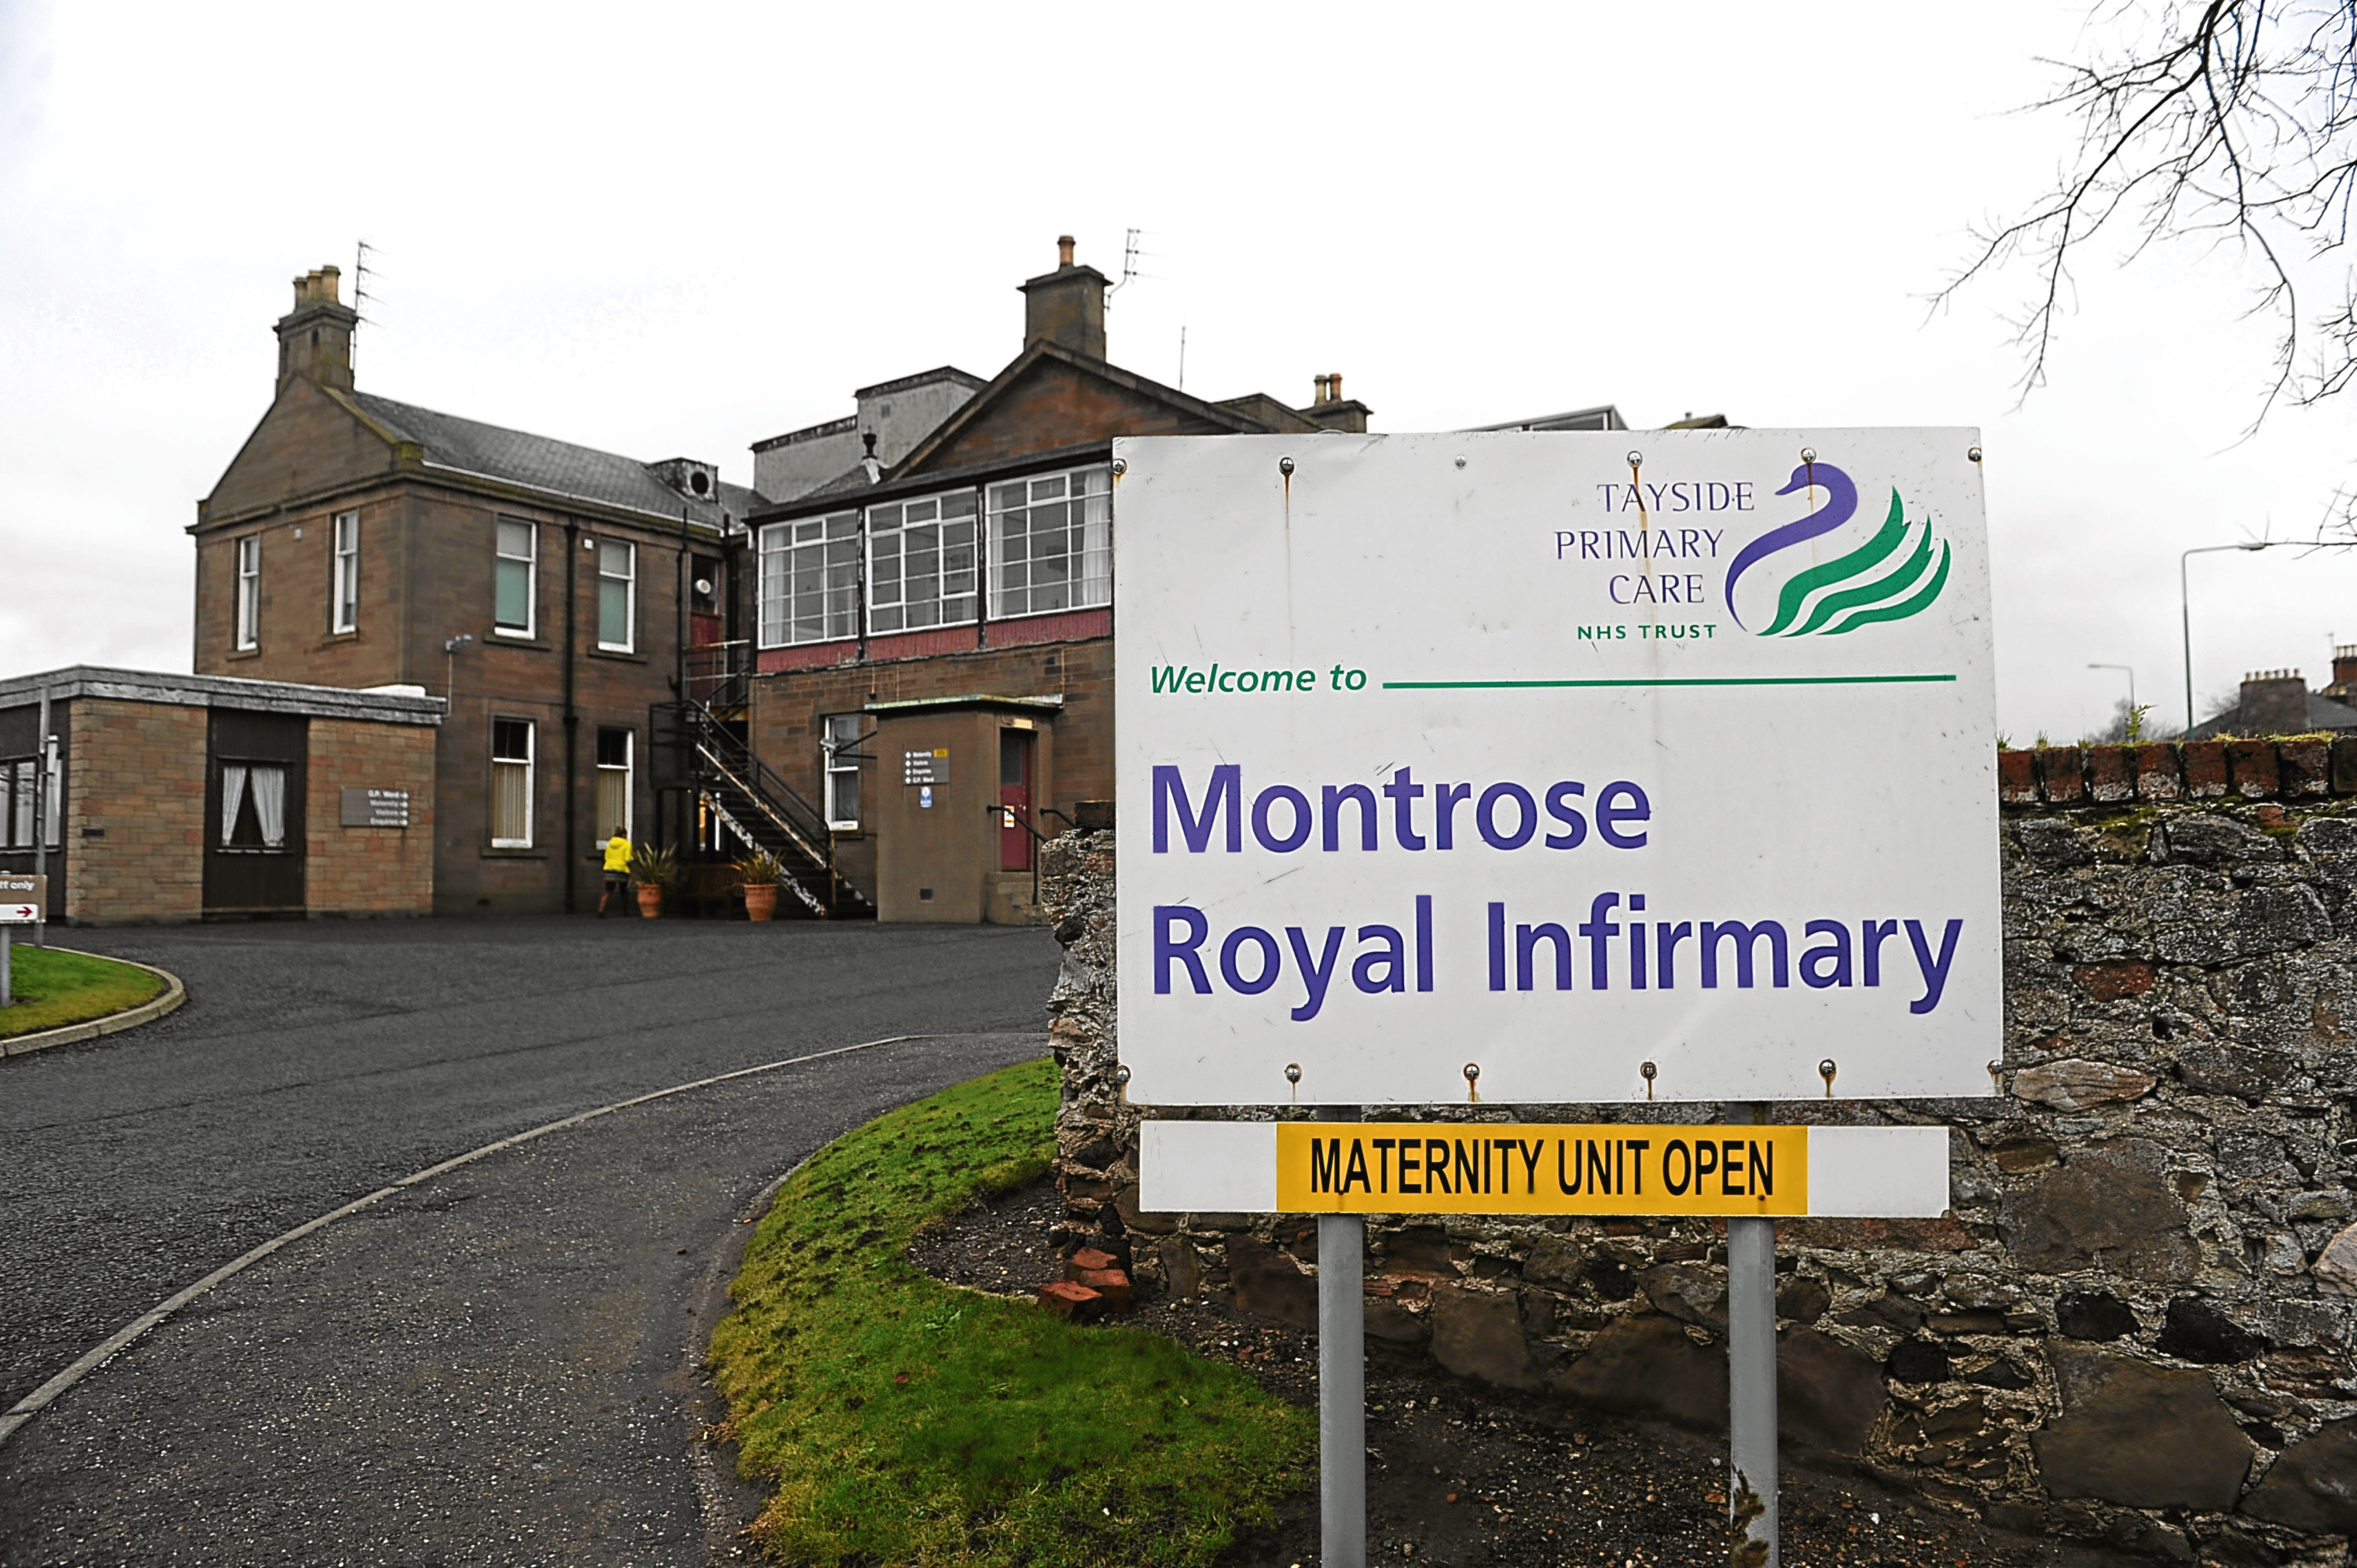 Courier News - Angus - Rob McLaren story, for story about closure fears for the Montrose Royal Infirmary. Picture Shows; general view of the Montrose Royal Infirmary in the background, Bridge Street, Montrose, Tuesday 20 December 2016